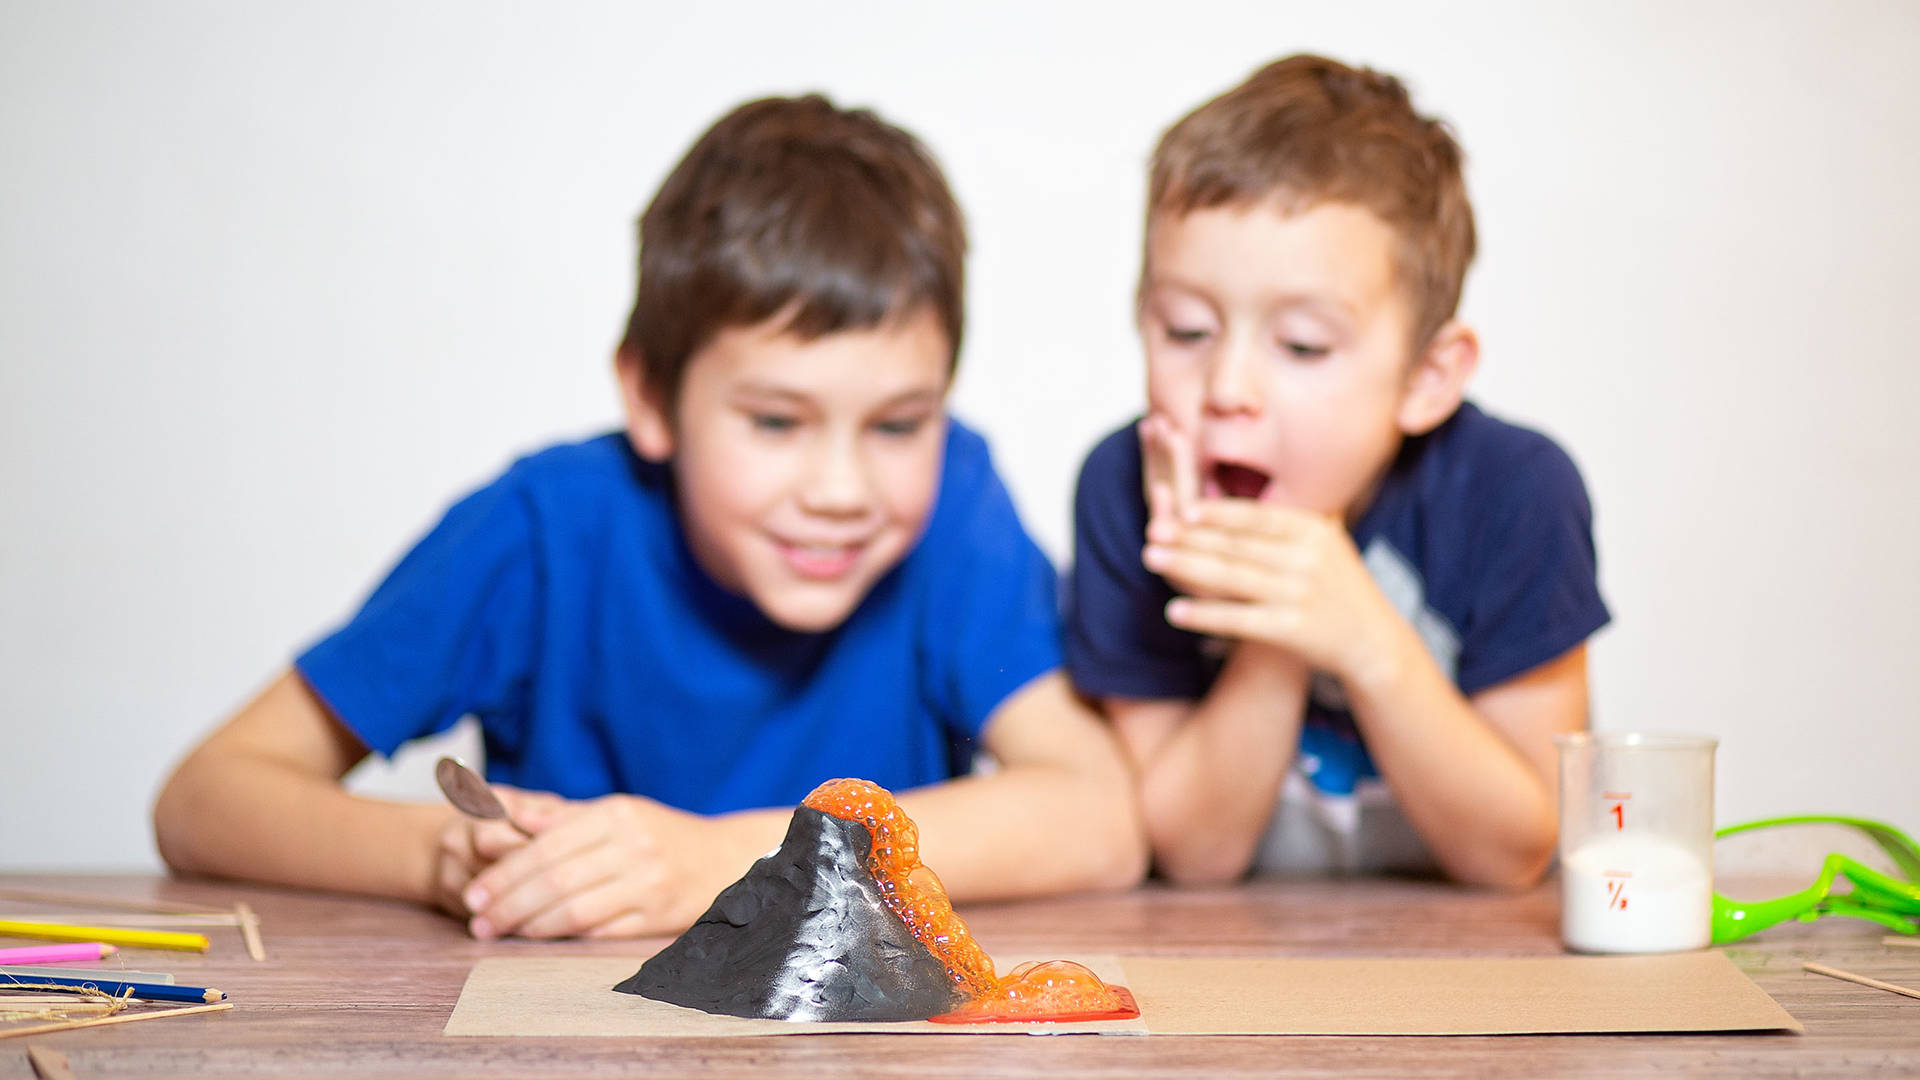 Two children conducting a science experiment